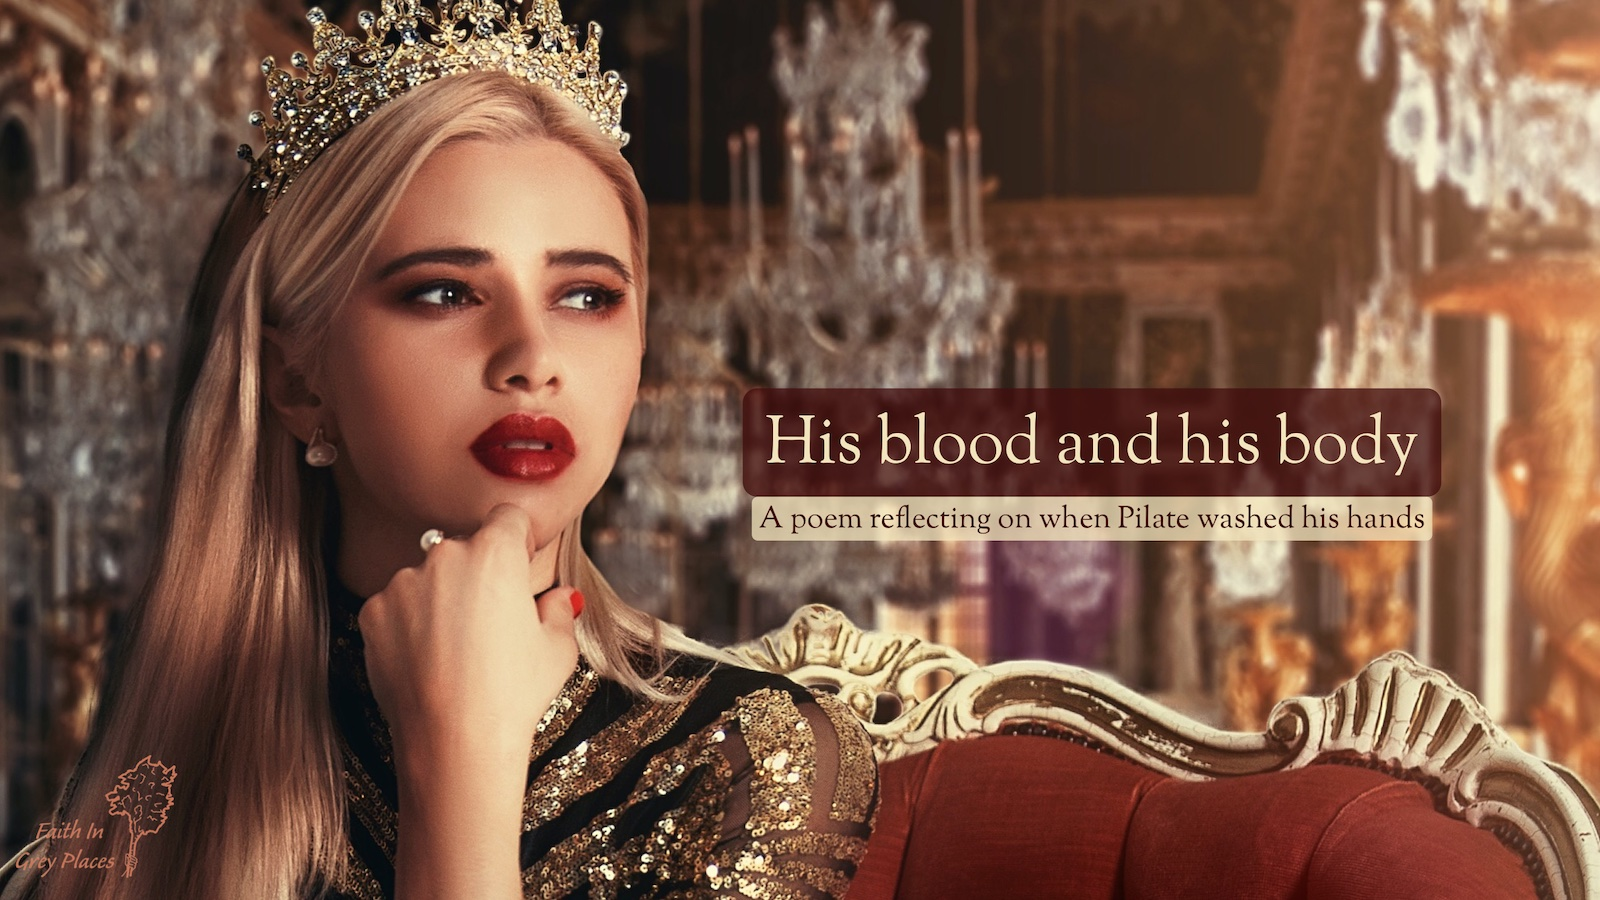 Close up picture of a rich woman in a large ornate room, sitting on a red and gold couch, wearing a tiara, looking out towards the light with a concerned look on her face. Has the text: His blood and his body, a poem reflecting on when Pilate washed his hands